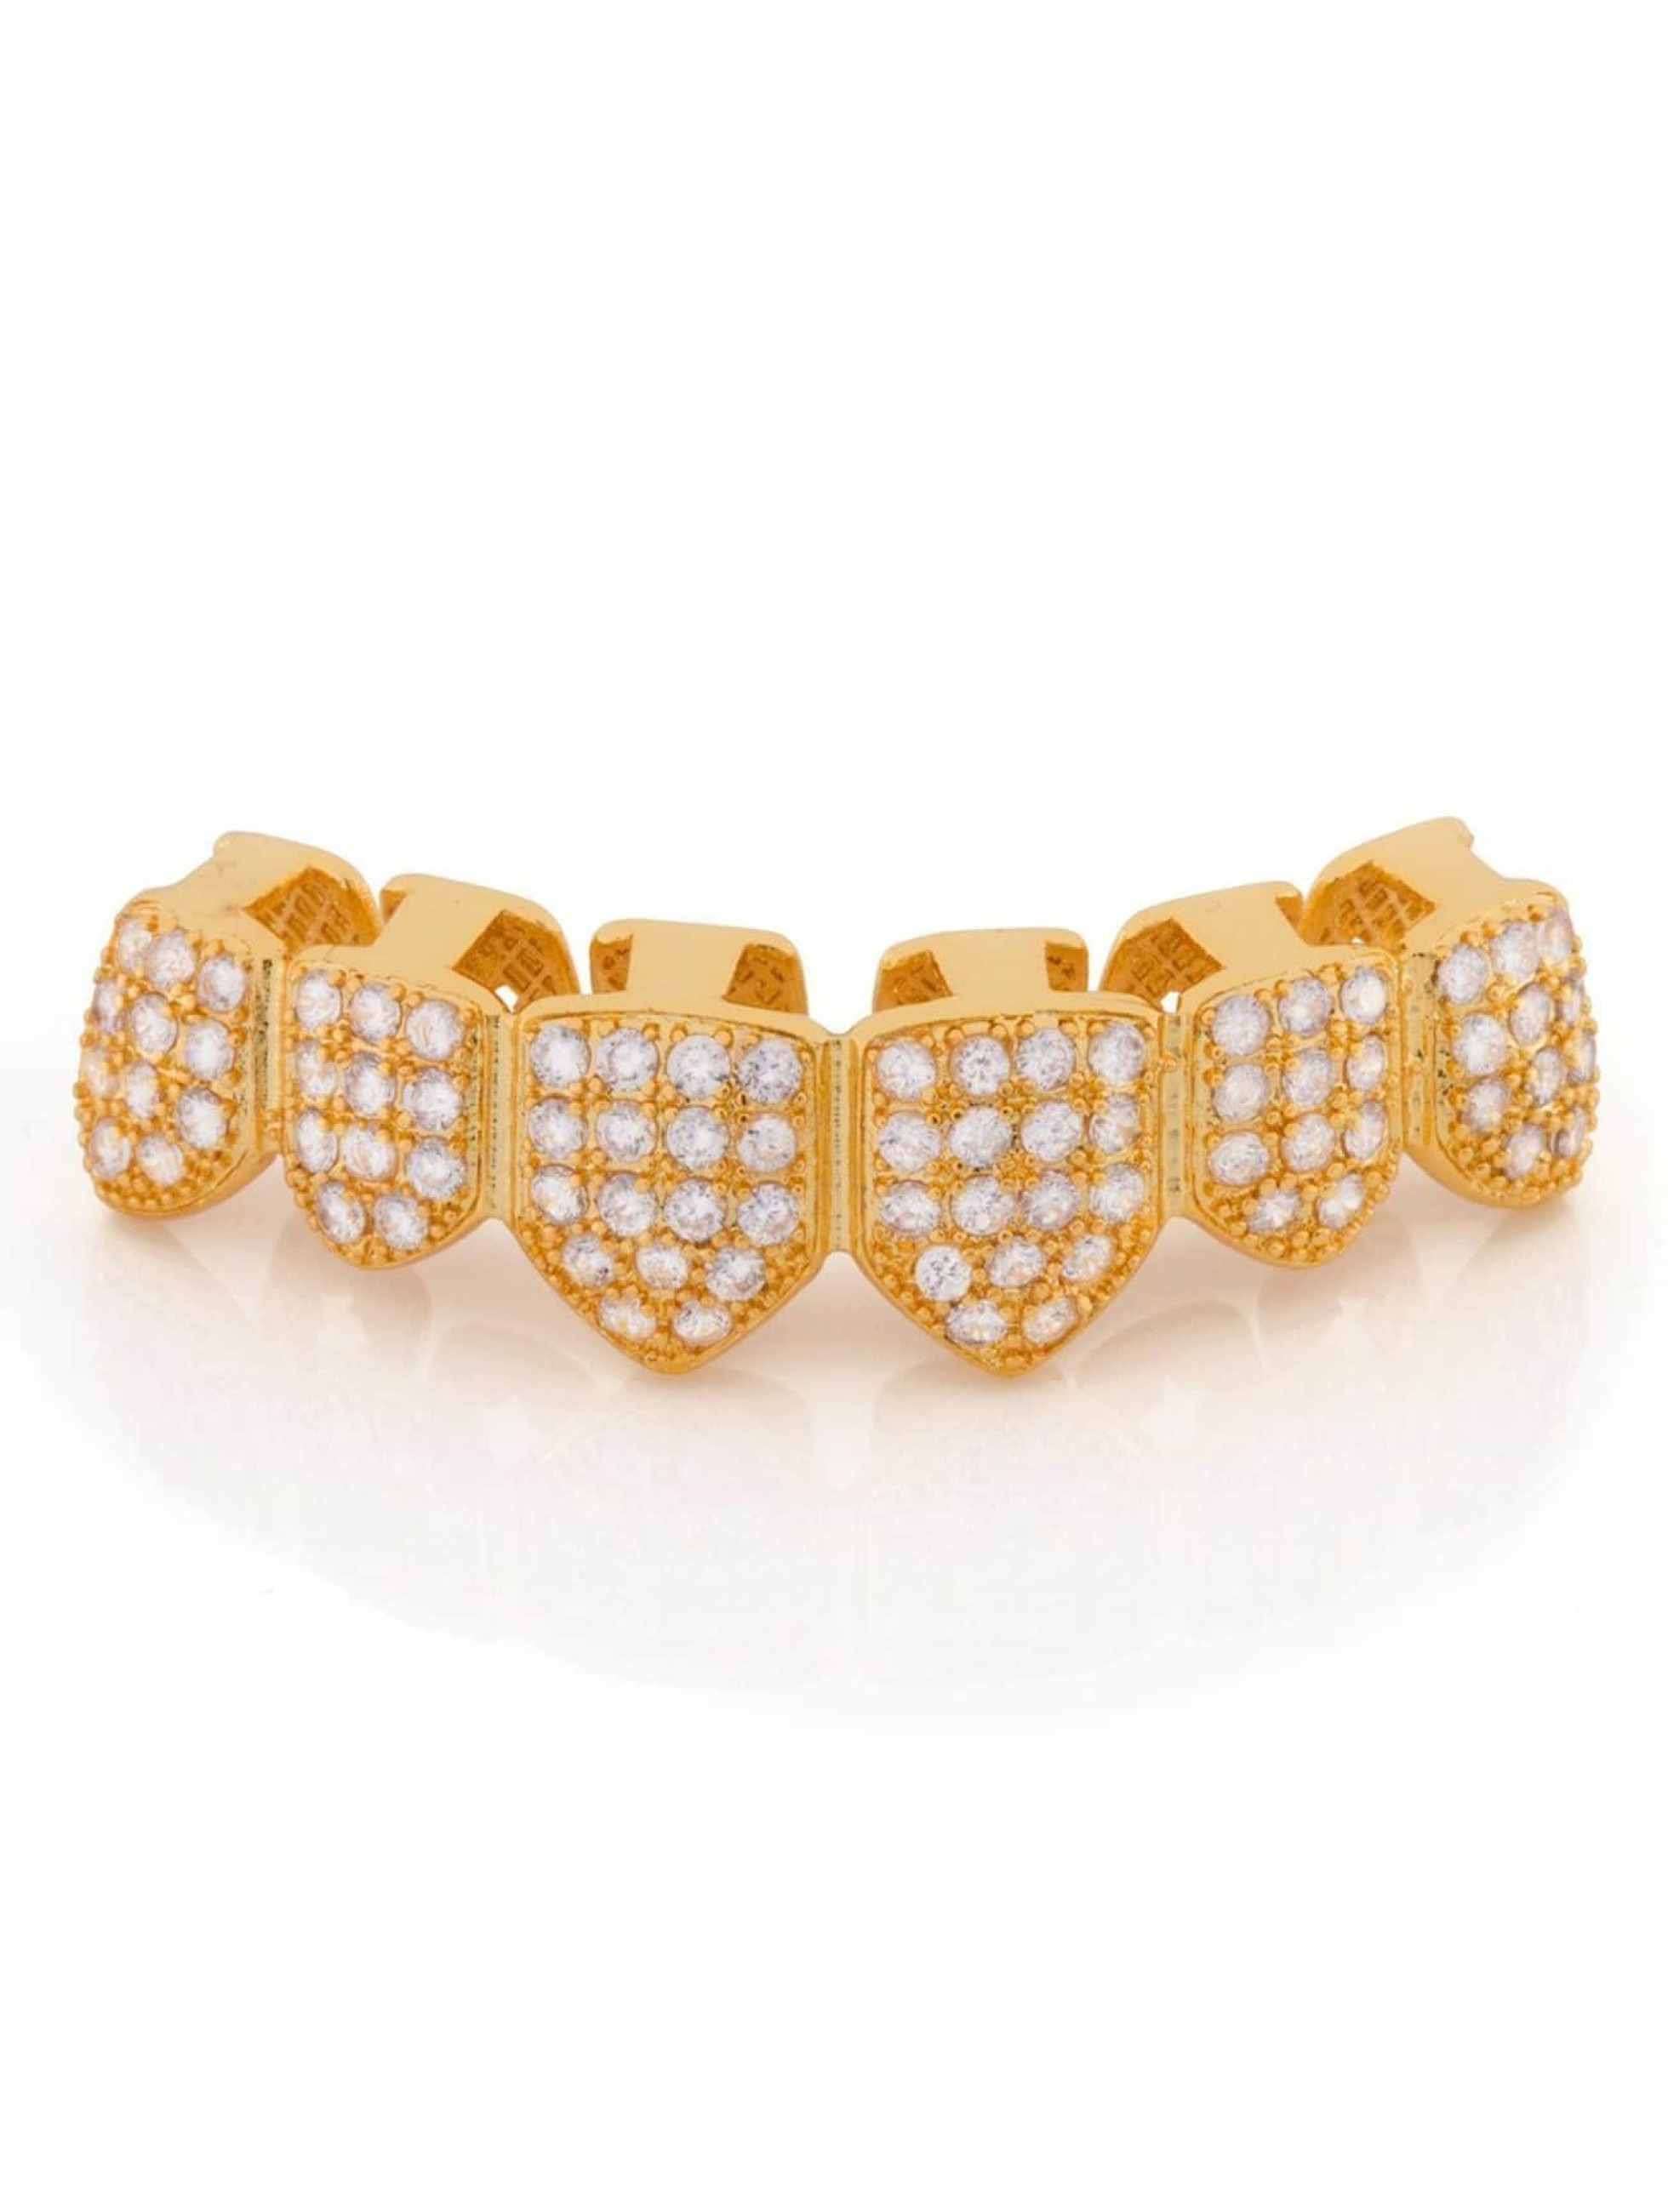 KING ICE Pozostałe Gold_Plated CZ Studded Teeth Bottom zloty